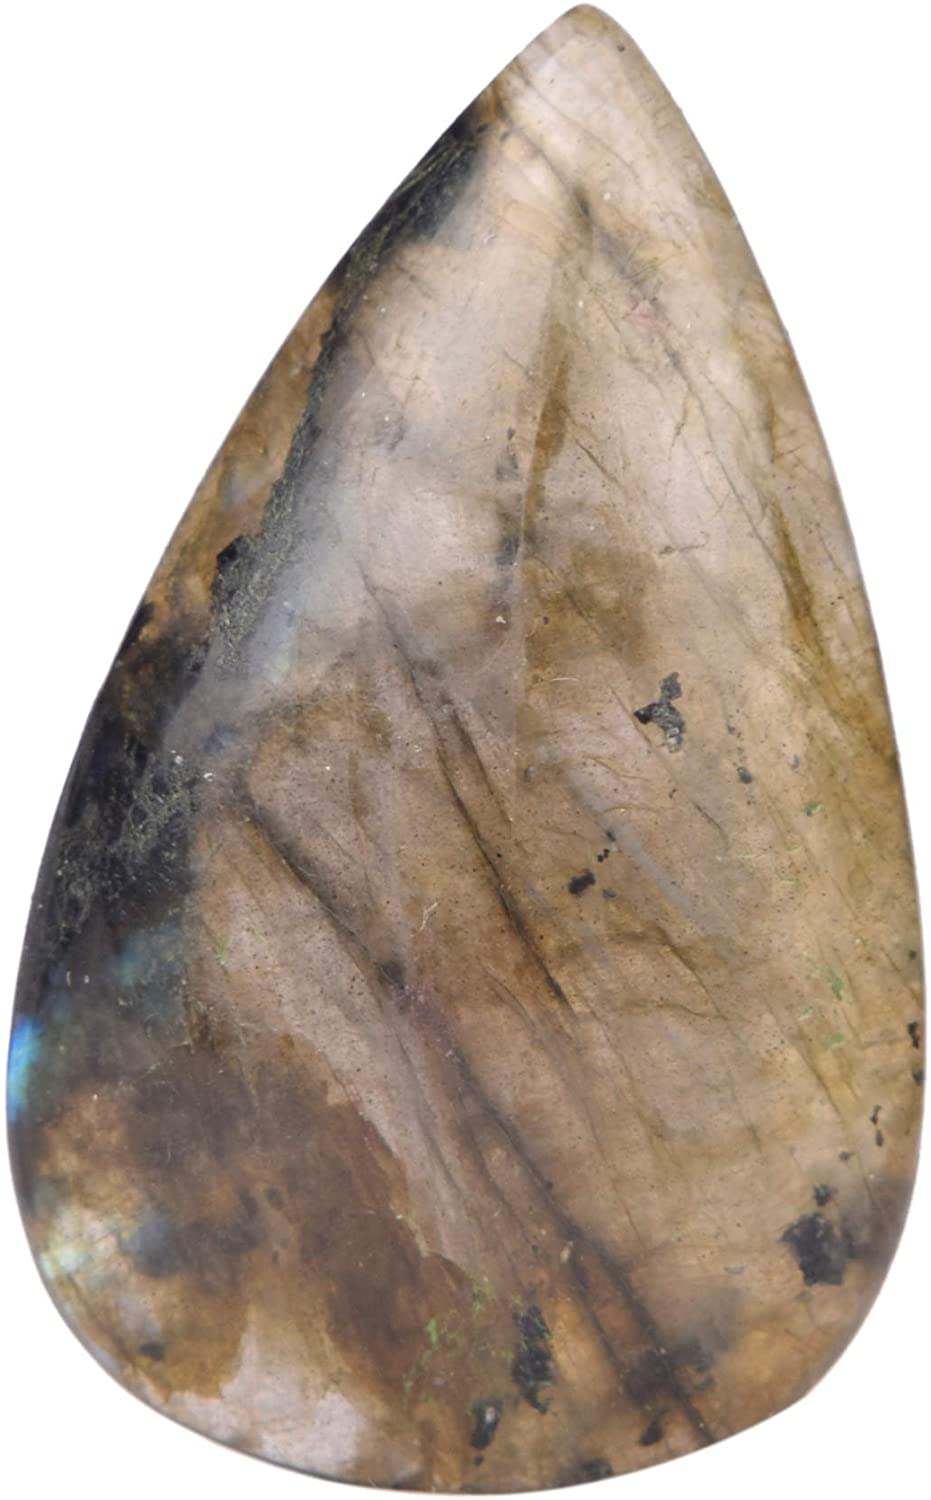 Real Gems Cabochon Natural Labradorite Stone, Blue Flash Pear Shape Cabochon for Jewelry Making 52.50 Ct Loose Gemstone